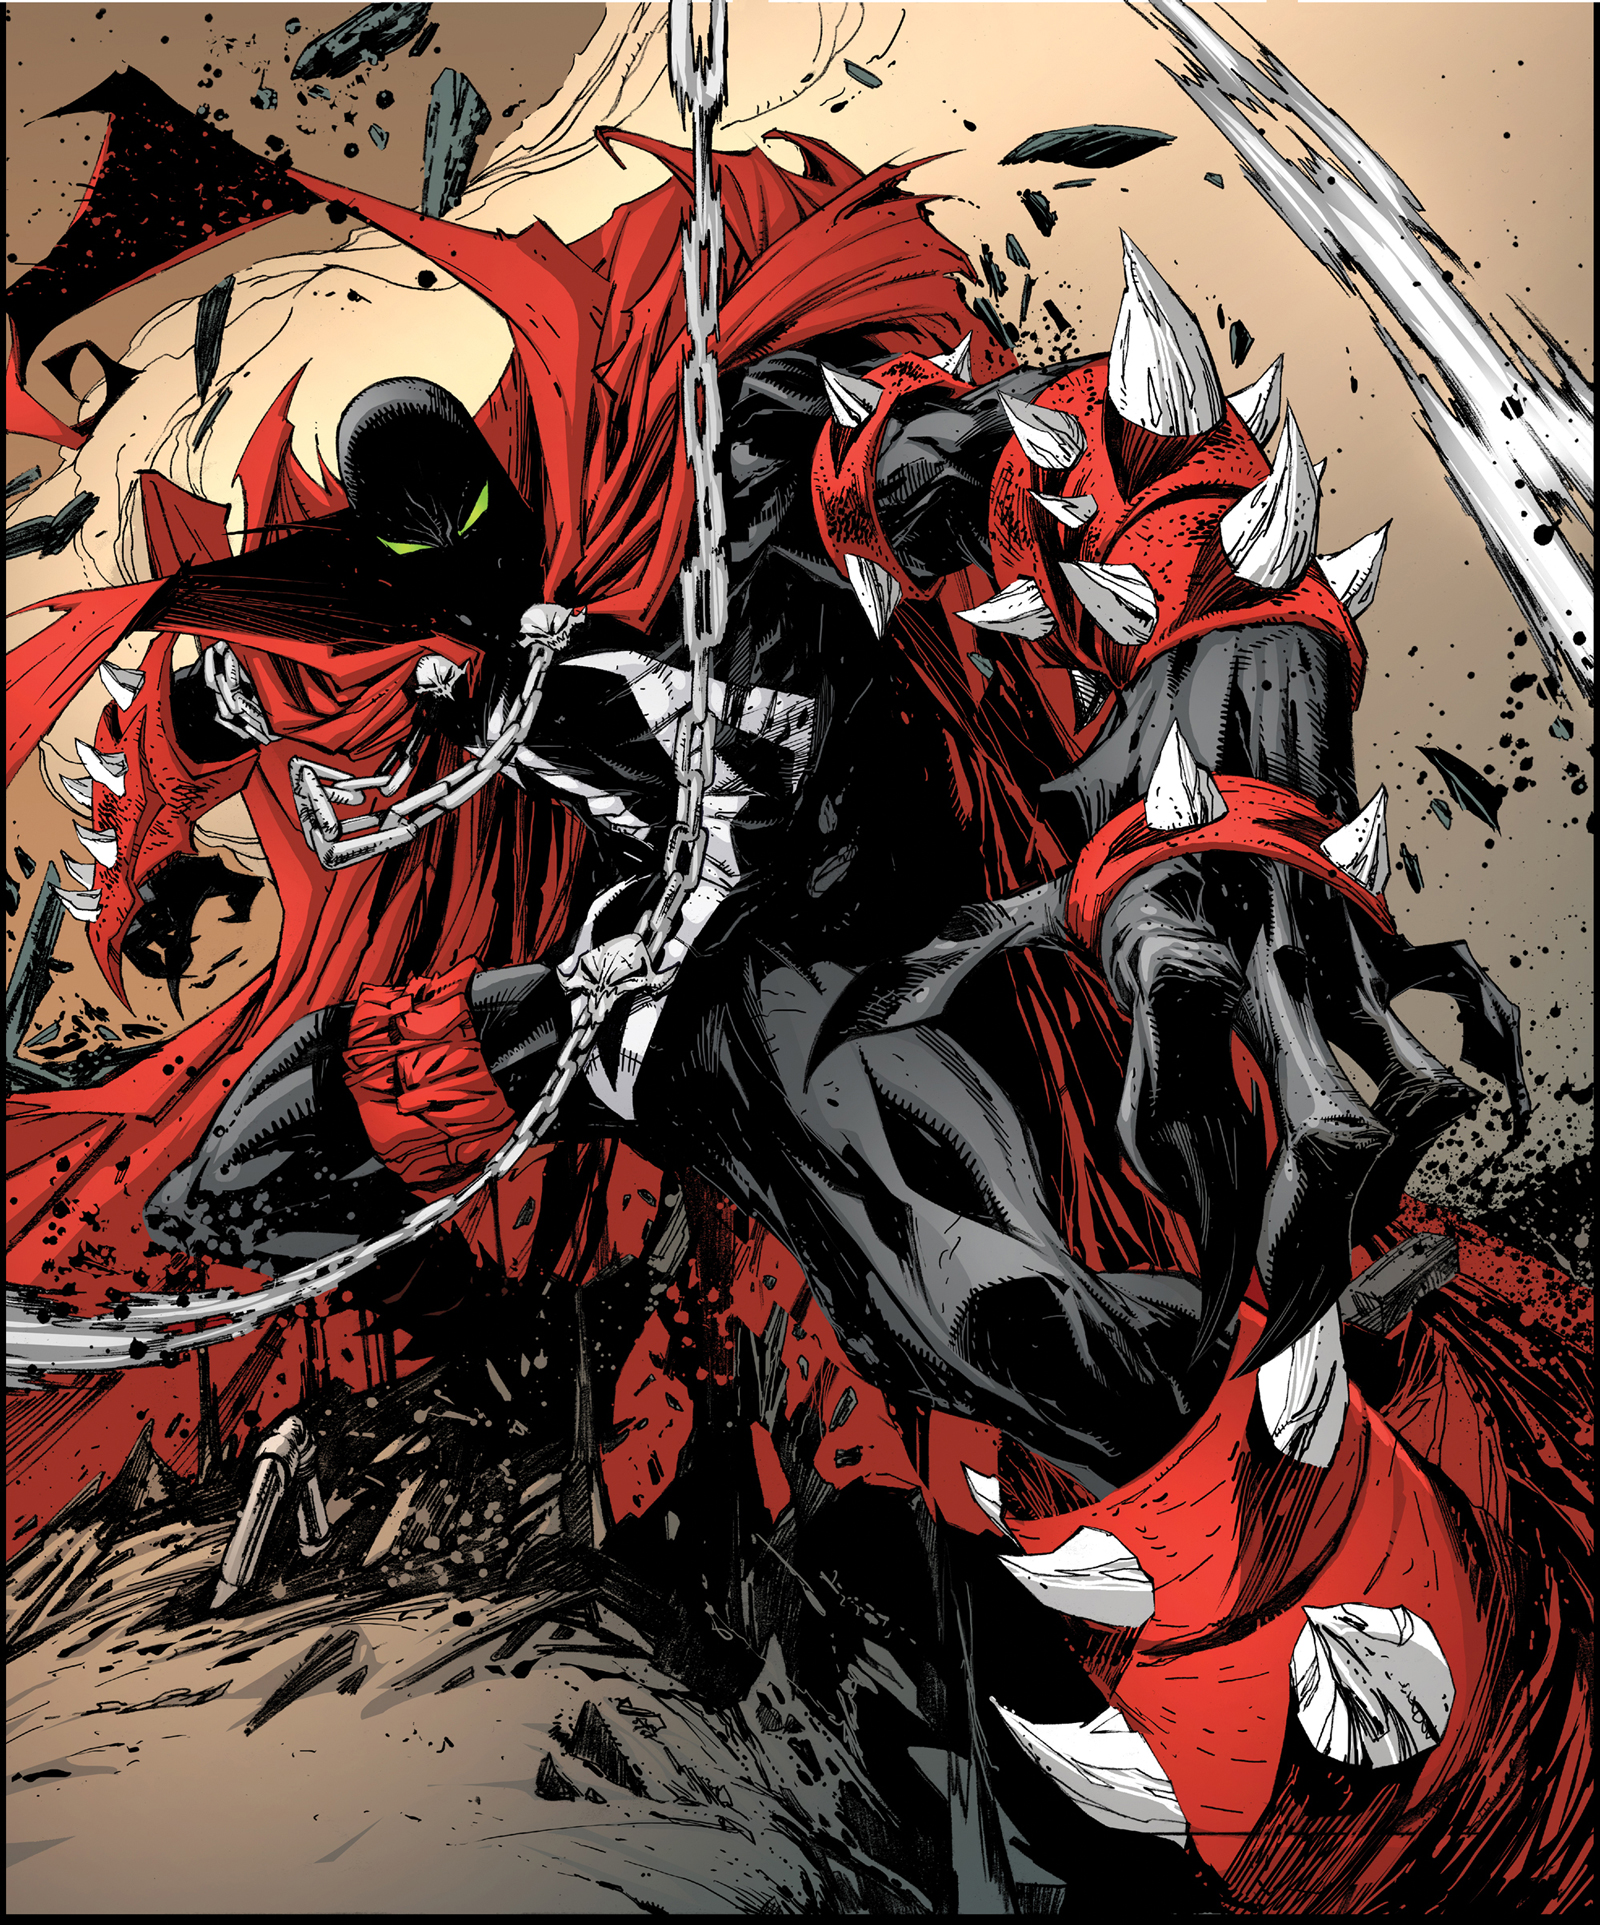 Art Of Comics And Manga: Sexy Spawn Art And A Chance To Get Into A Spawn Comic